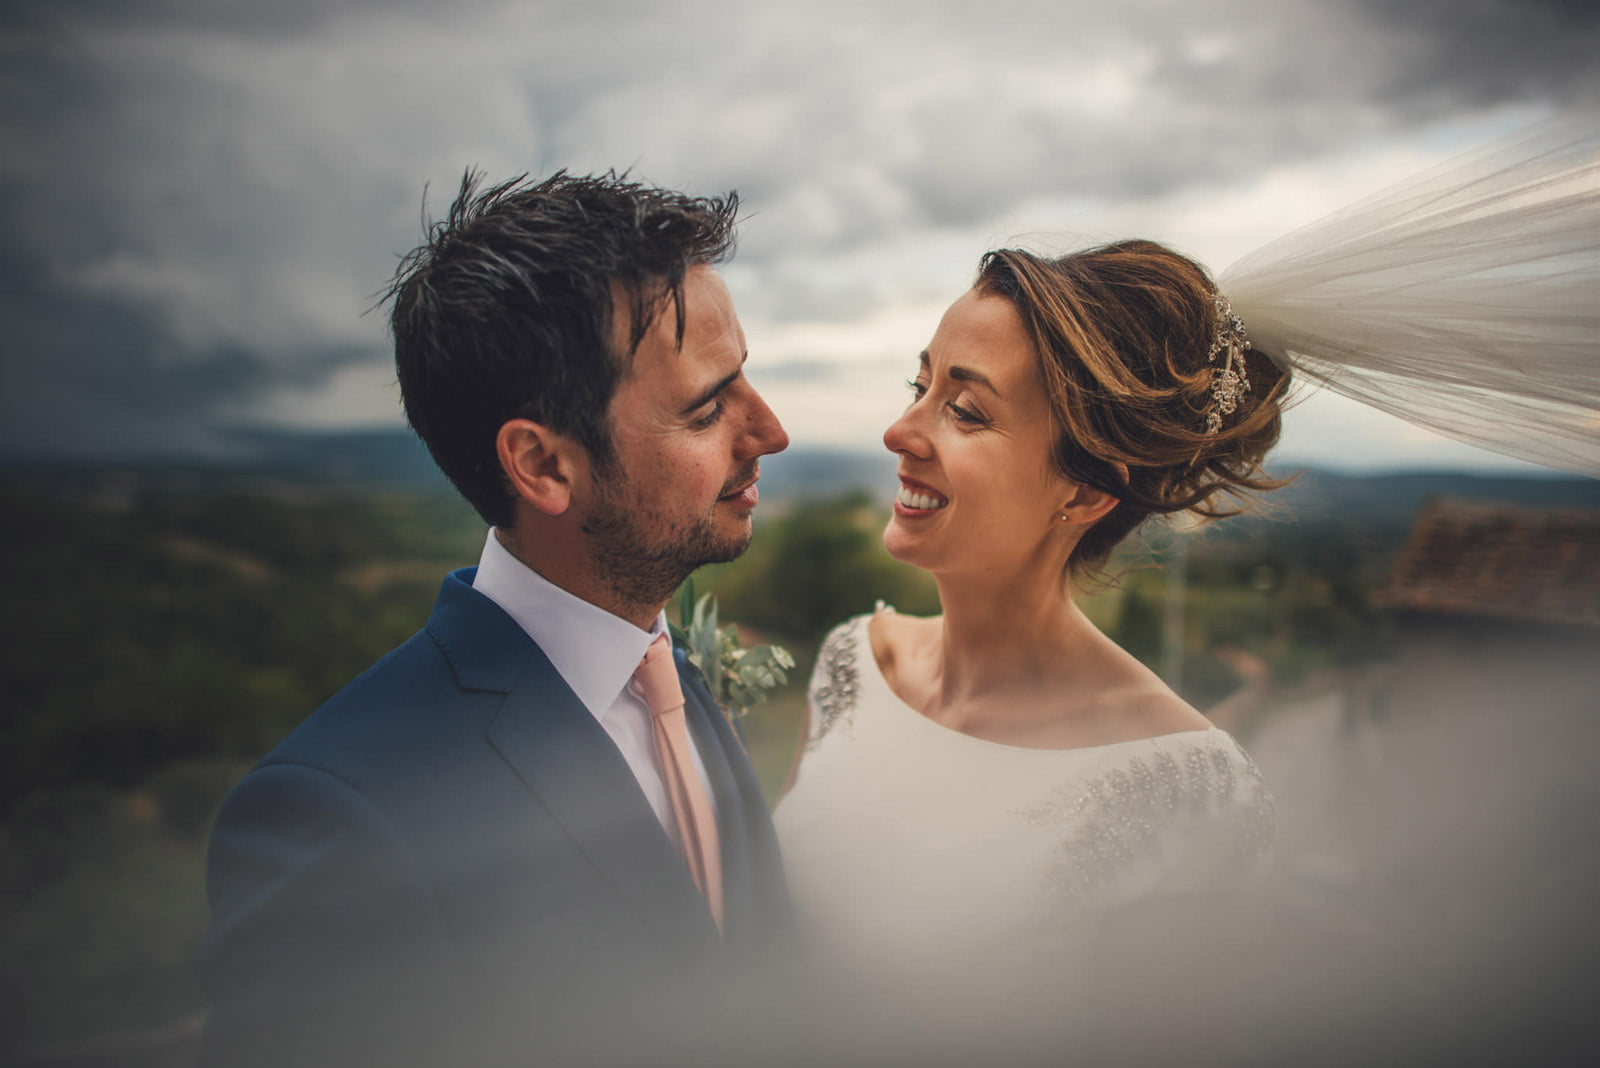 076-wedding-tuscany-san-galgano-federico-pannacci-photographer